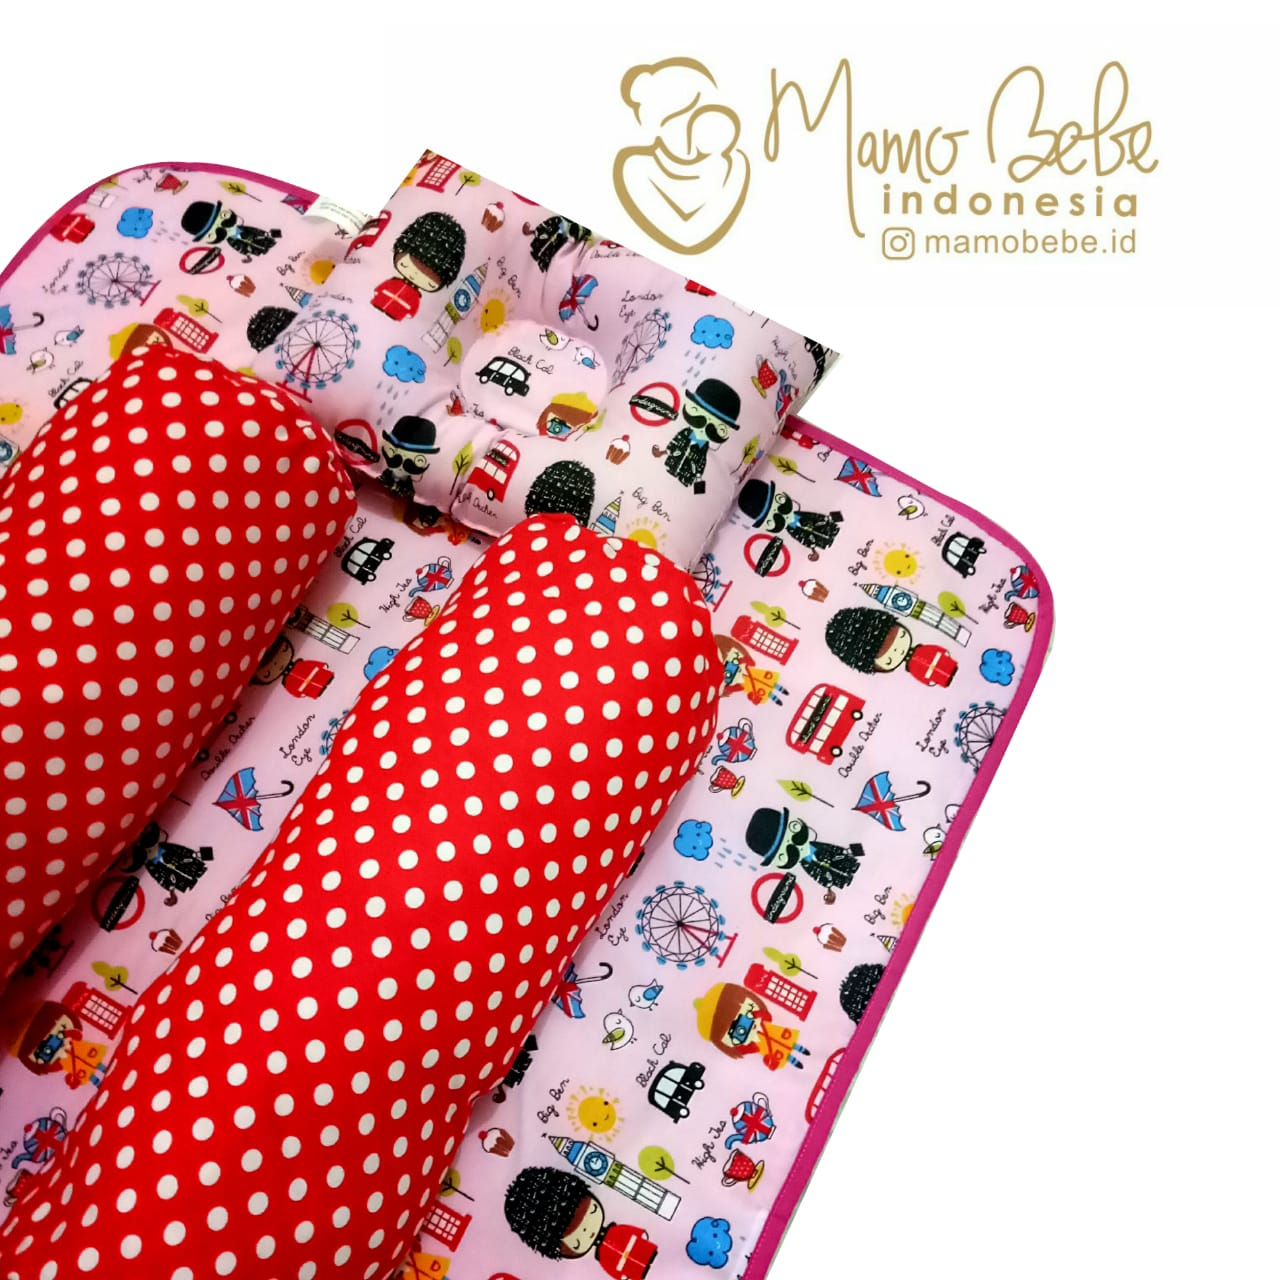 EKSKLUSIF Kado Bayi Baby Bedding Set 4in1 Matras Perlak Set Bantal Peang Plus 2 Guling motif London Pink